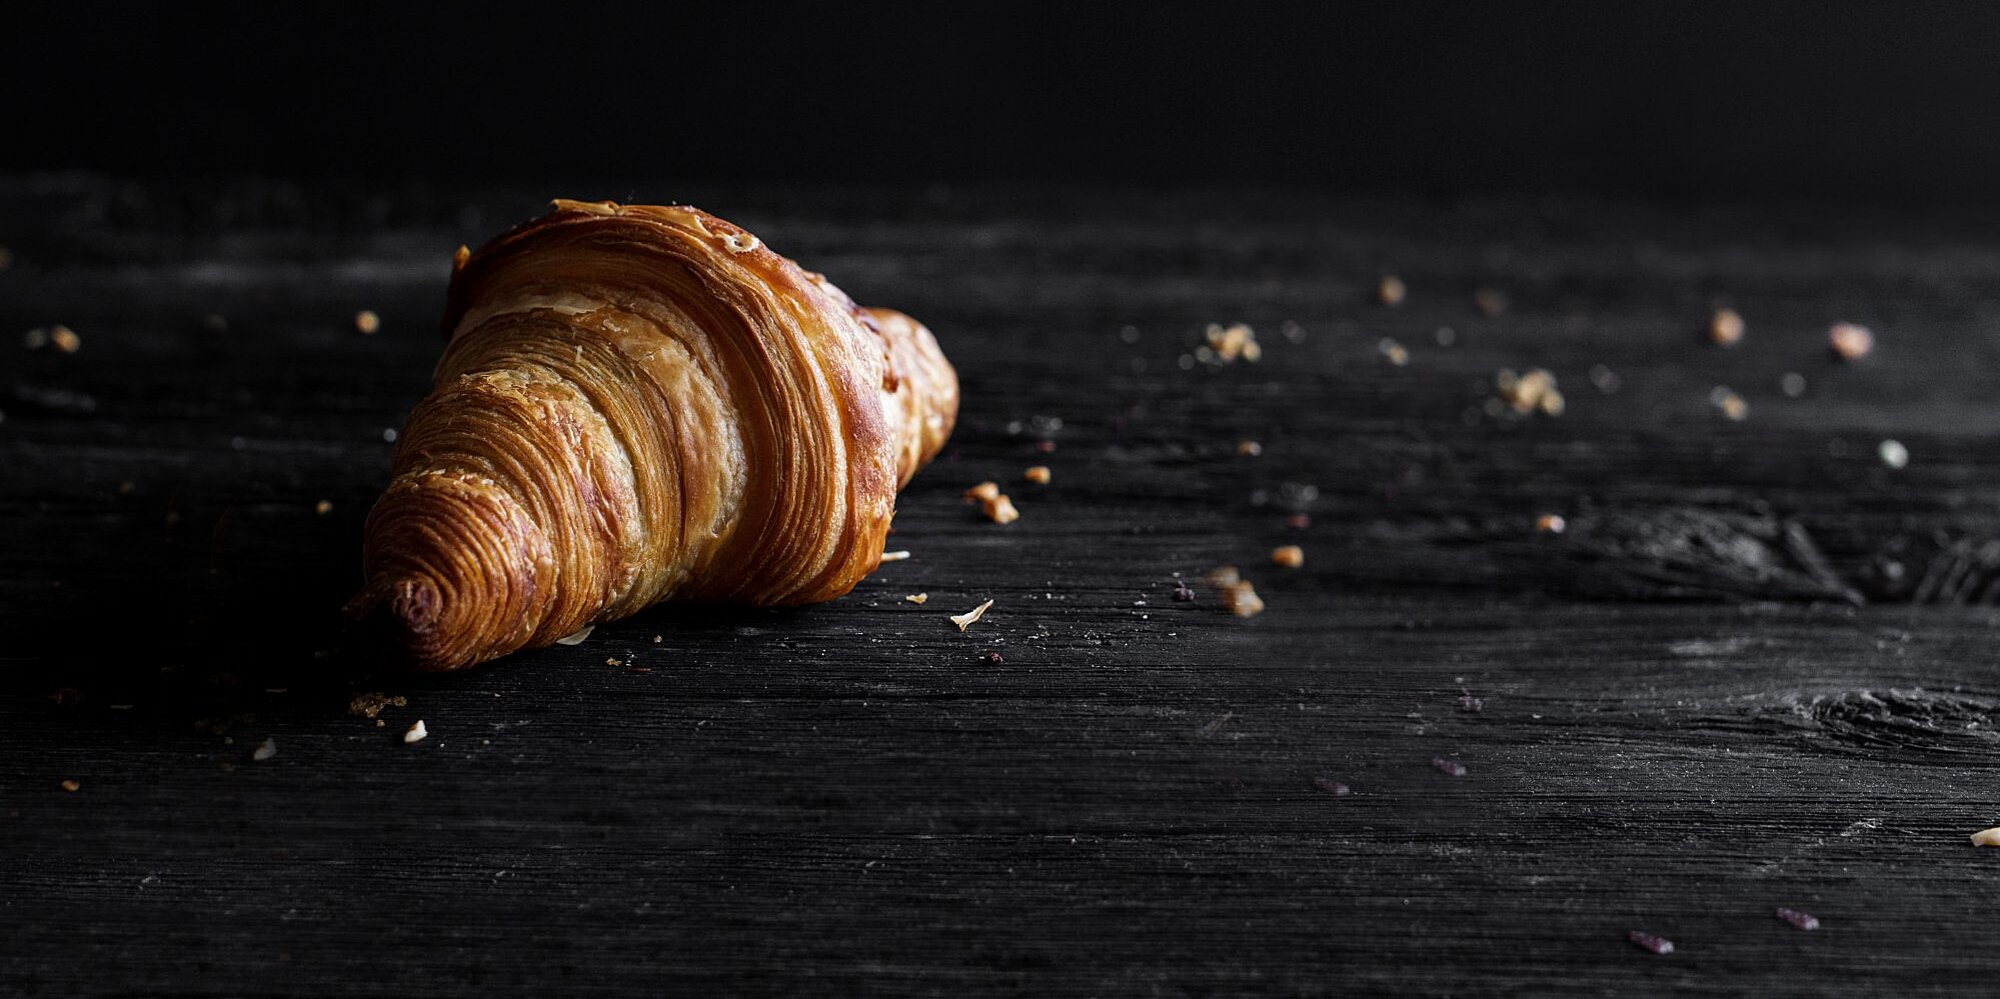 The Terrifying Creature a Woman Saw Out Her Window Turned Out to Be a Croissant